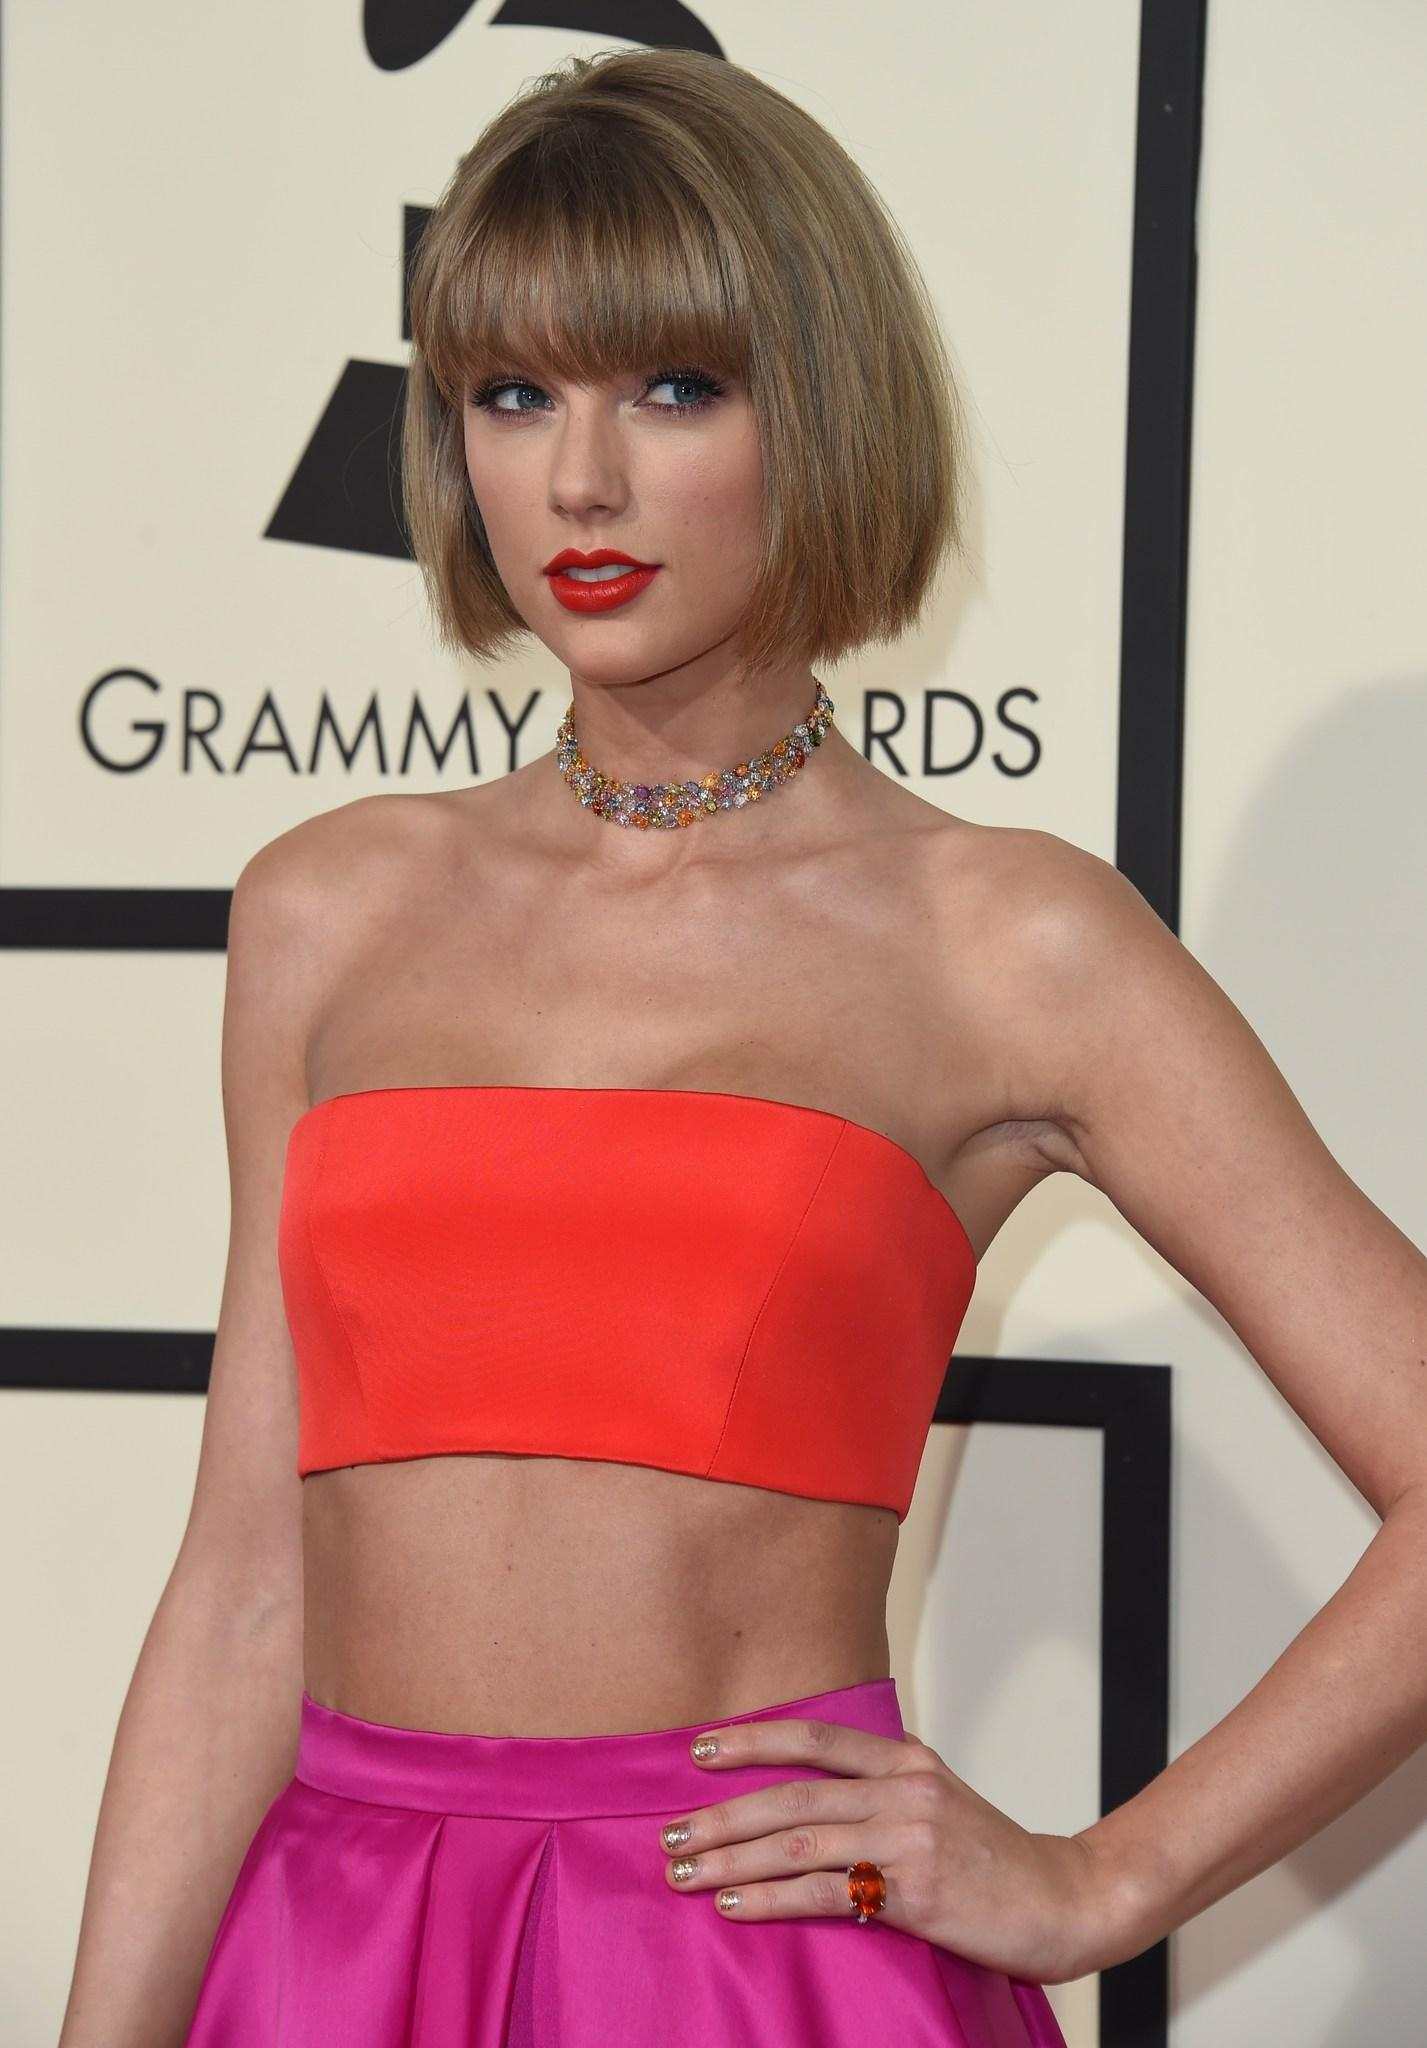 The 2016 Grammy Awards are Here: Live Blog